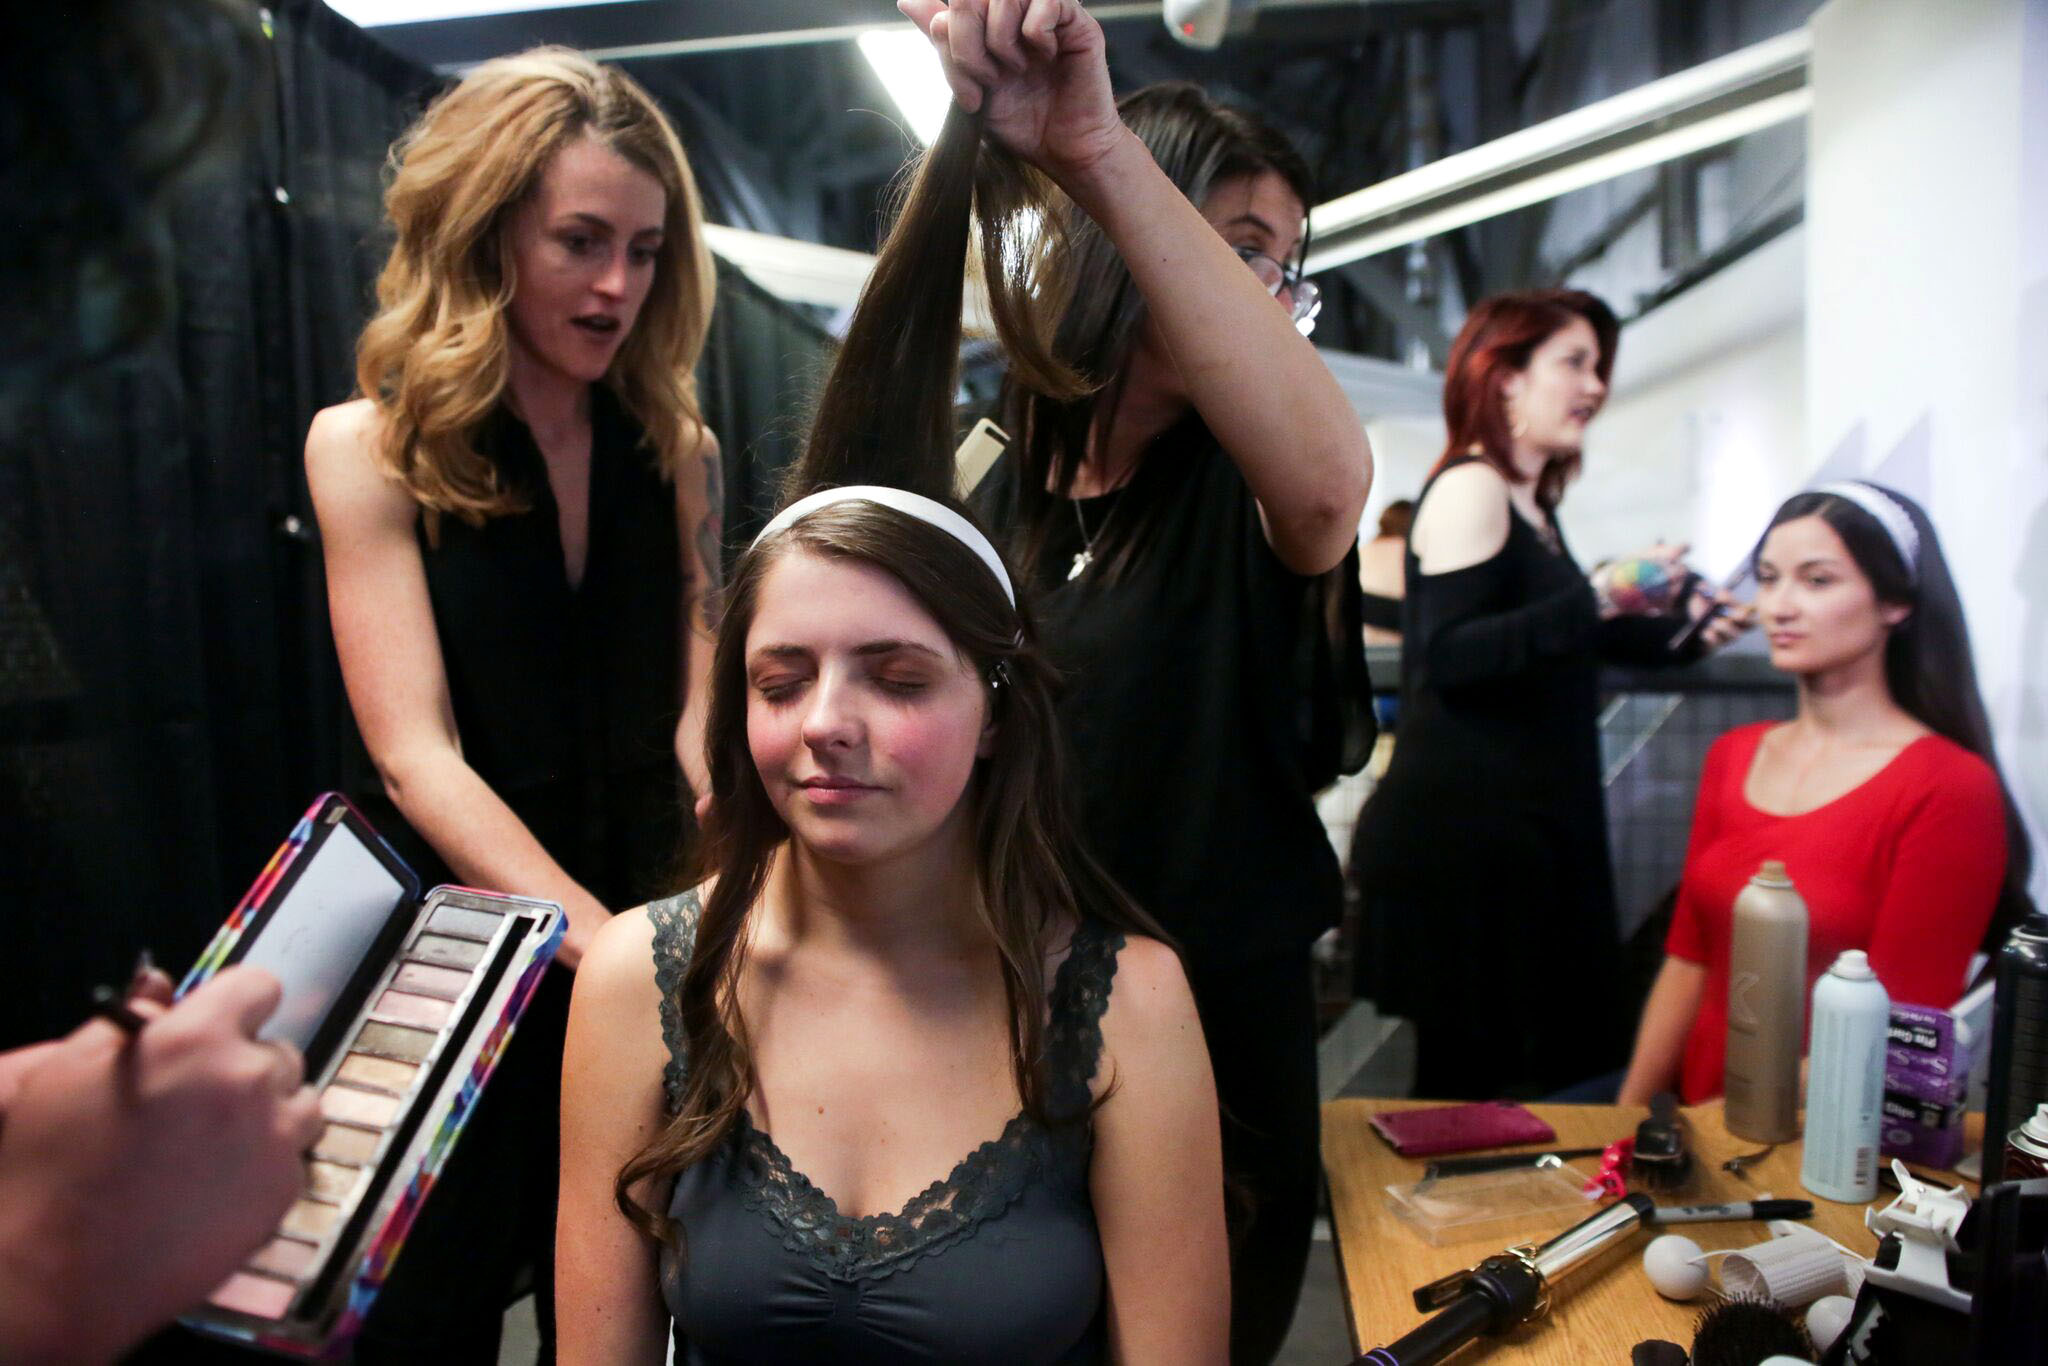 Makeup artists and hairstylists get a model ready for the runway during Denver Fashion Week on March 18, 2018 at Wings Over the Rockies Air and Space Museum in Denver, Colorado.